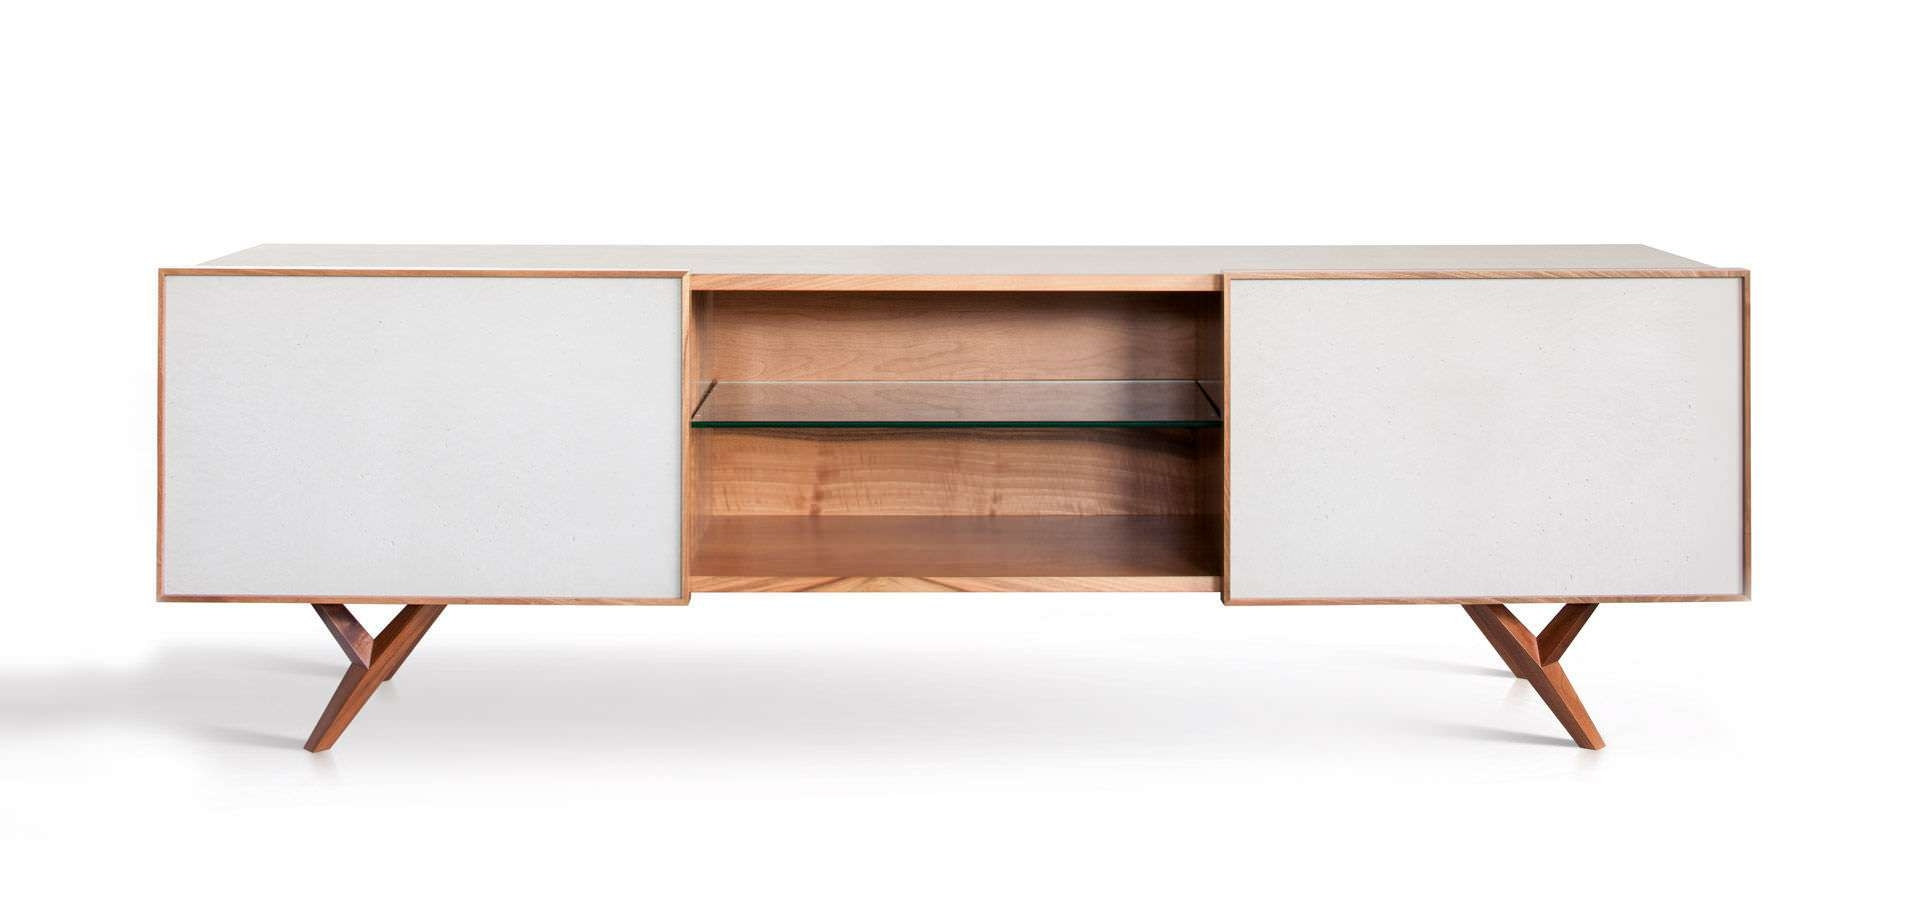 Furniture: Beautiful Profile Modern Sideboard For Living Room Inside White Modern Sideboards (View 9 of 20)